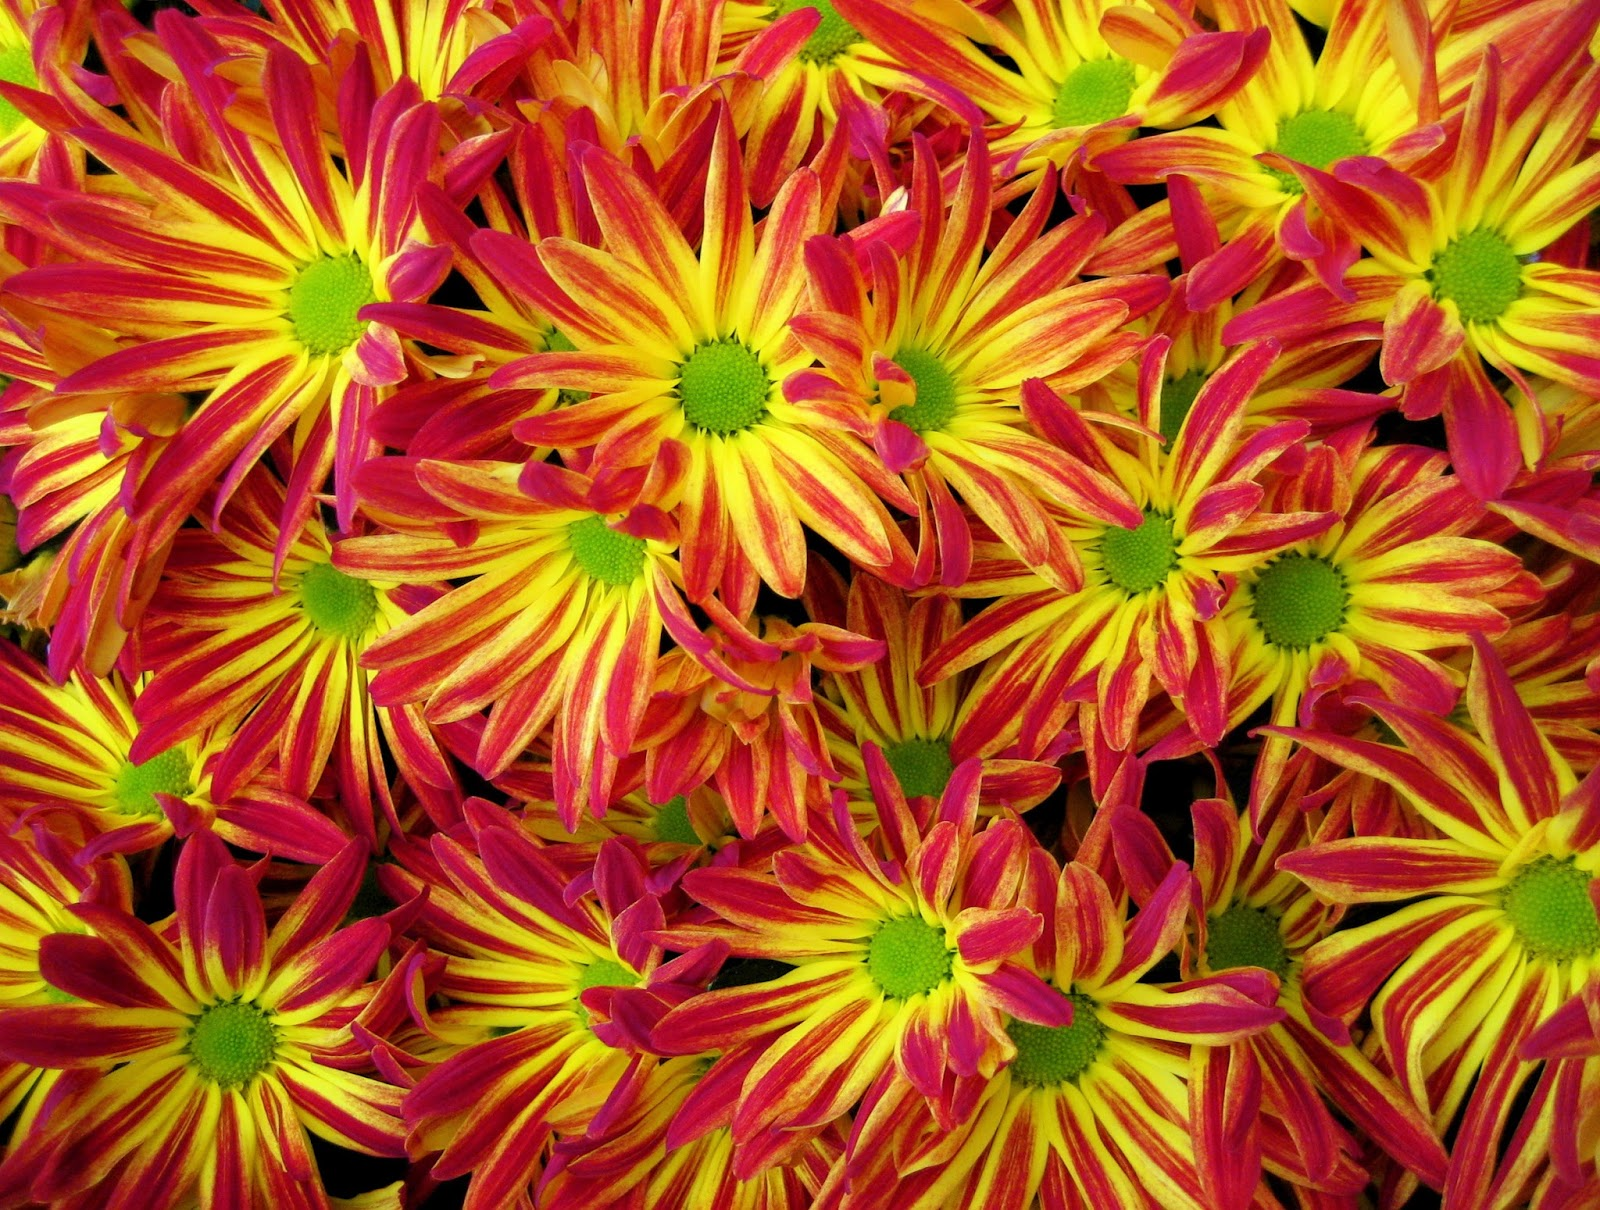 BREEDING CHRYSANTHEMUMS